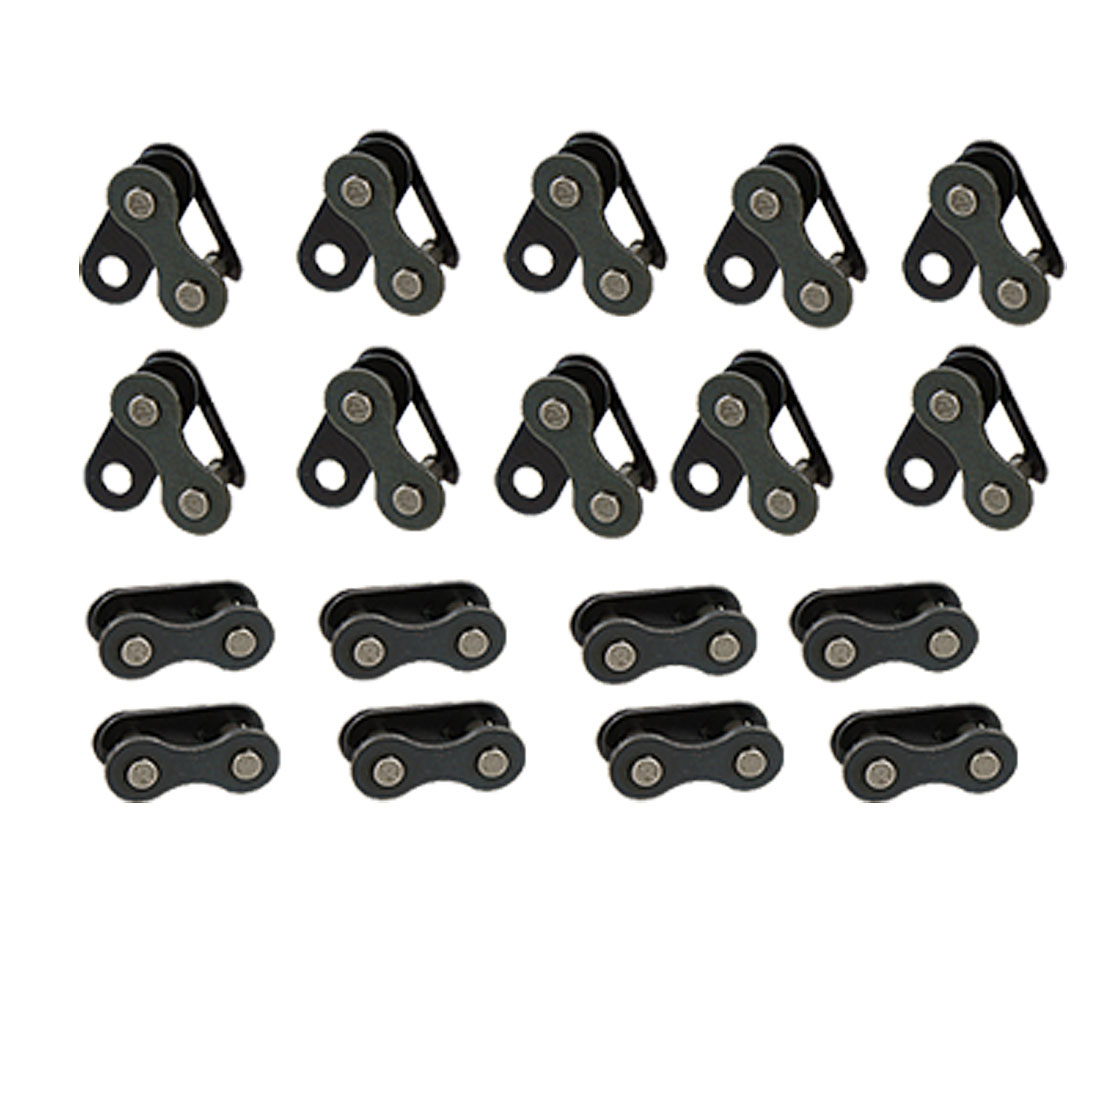 20 Pcs Replacement Bicycle Bike Chain Master Link Black